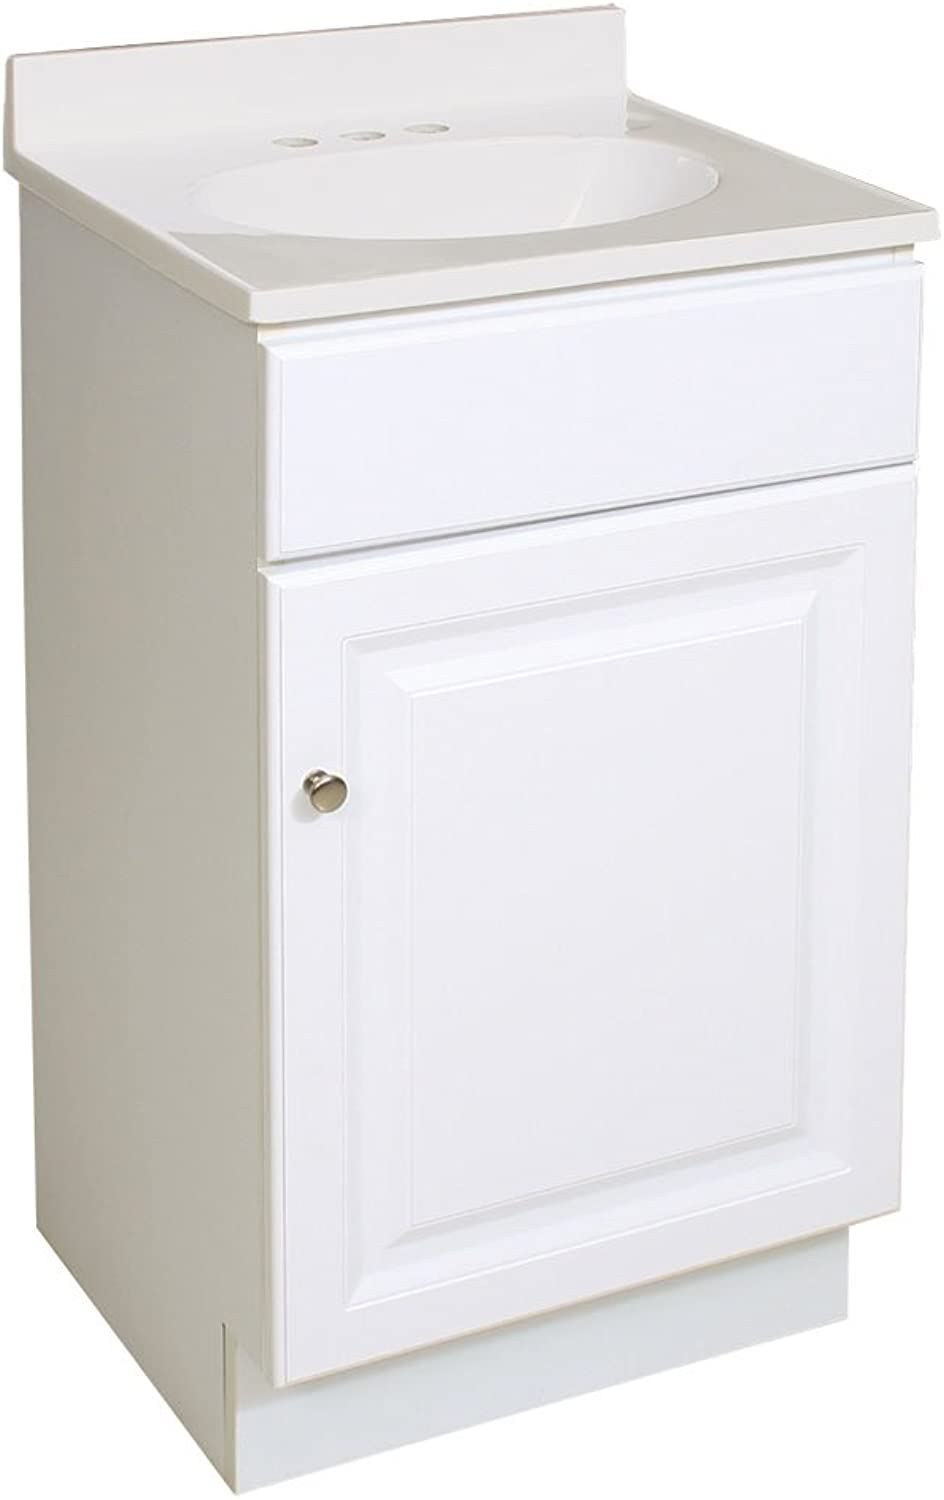 Design House 531723 18-Inch by 16-Inch Wyndham Ready-to-Assemble 1 Door Vanity, White